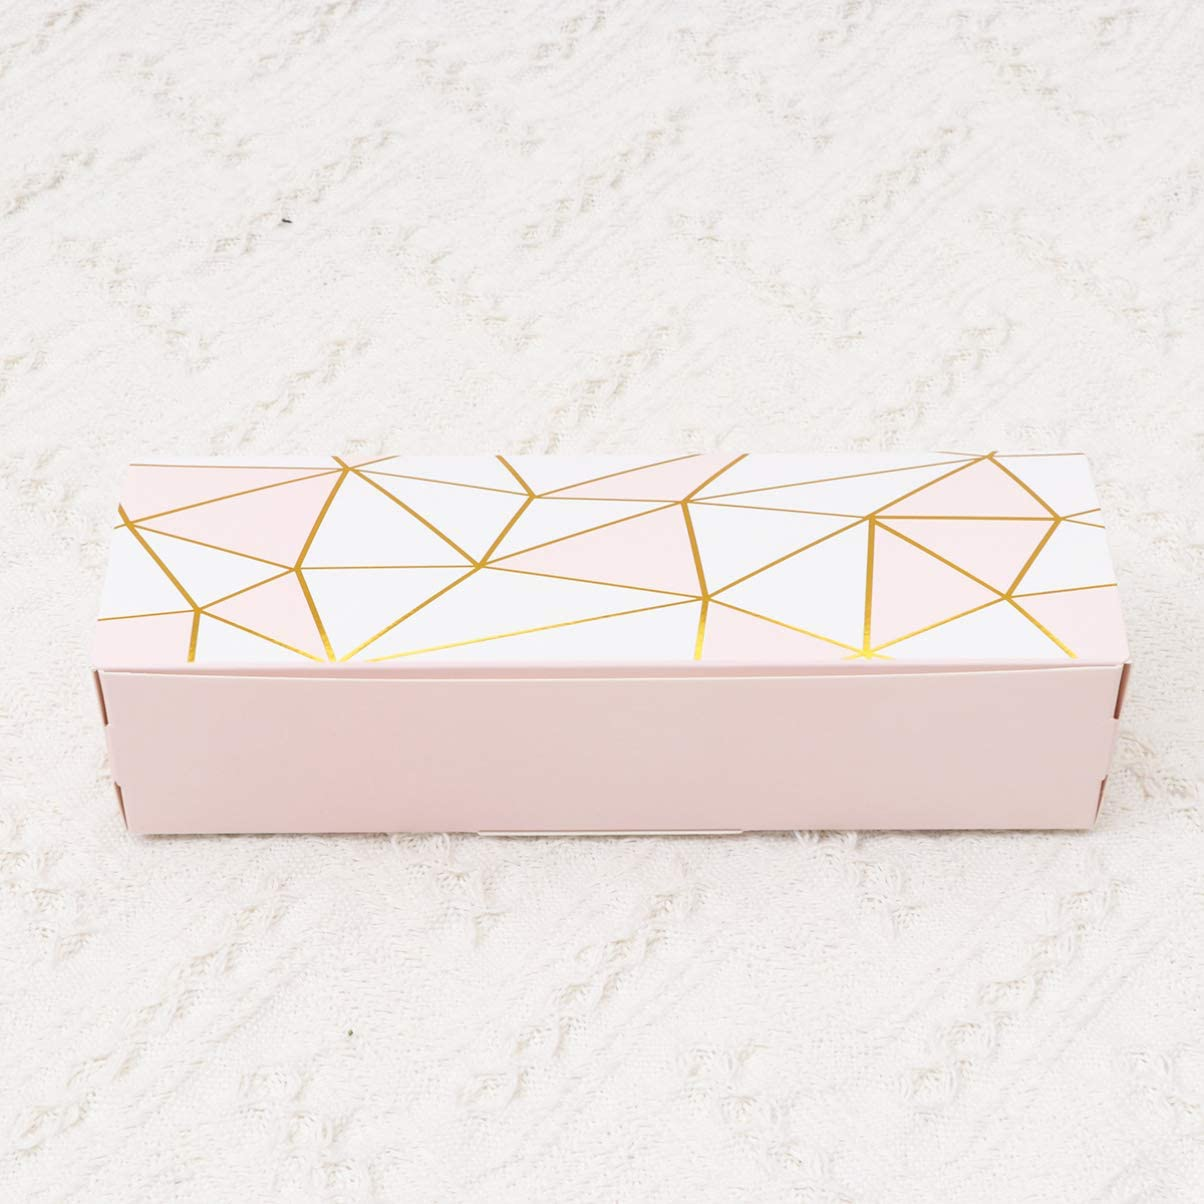 Candy Favors and More to Take Home Amosfun 20 pcs Cookie Packaging Box Treats Gift Boxes Rectangular Party Favor Boxes for Packing Wedding Cake Slices Cookies Blue with Golden Edge